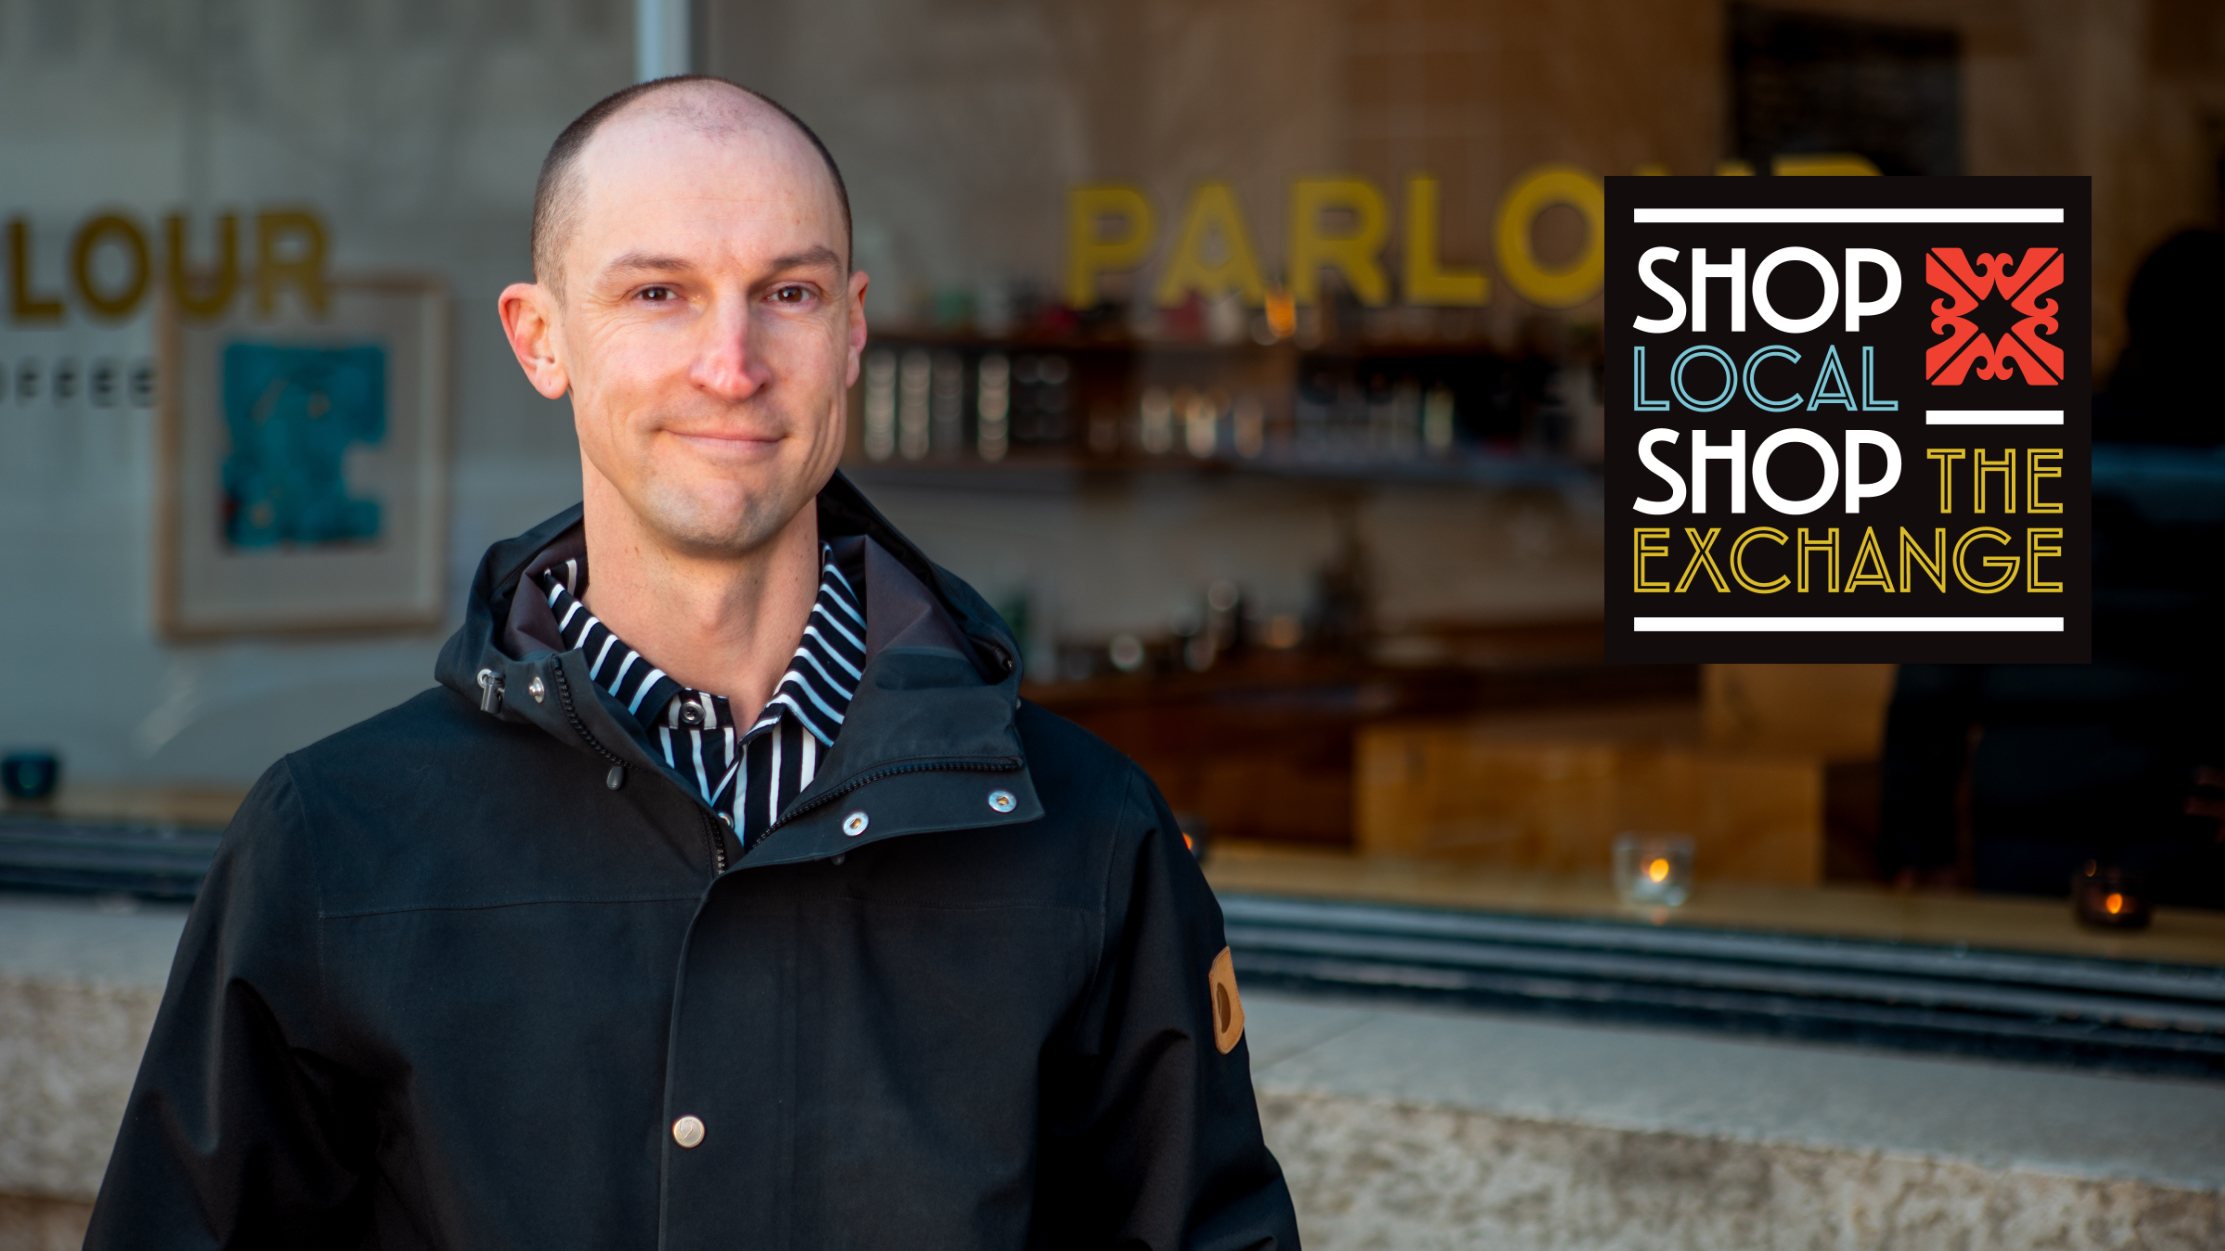 Owner Nils Vik stands in front of Parlour Coffee